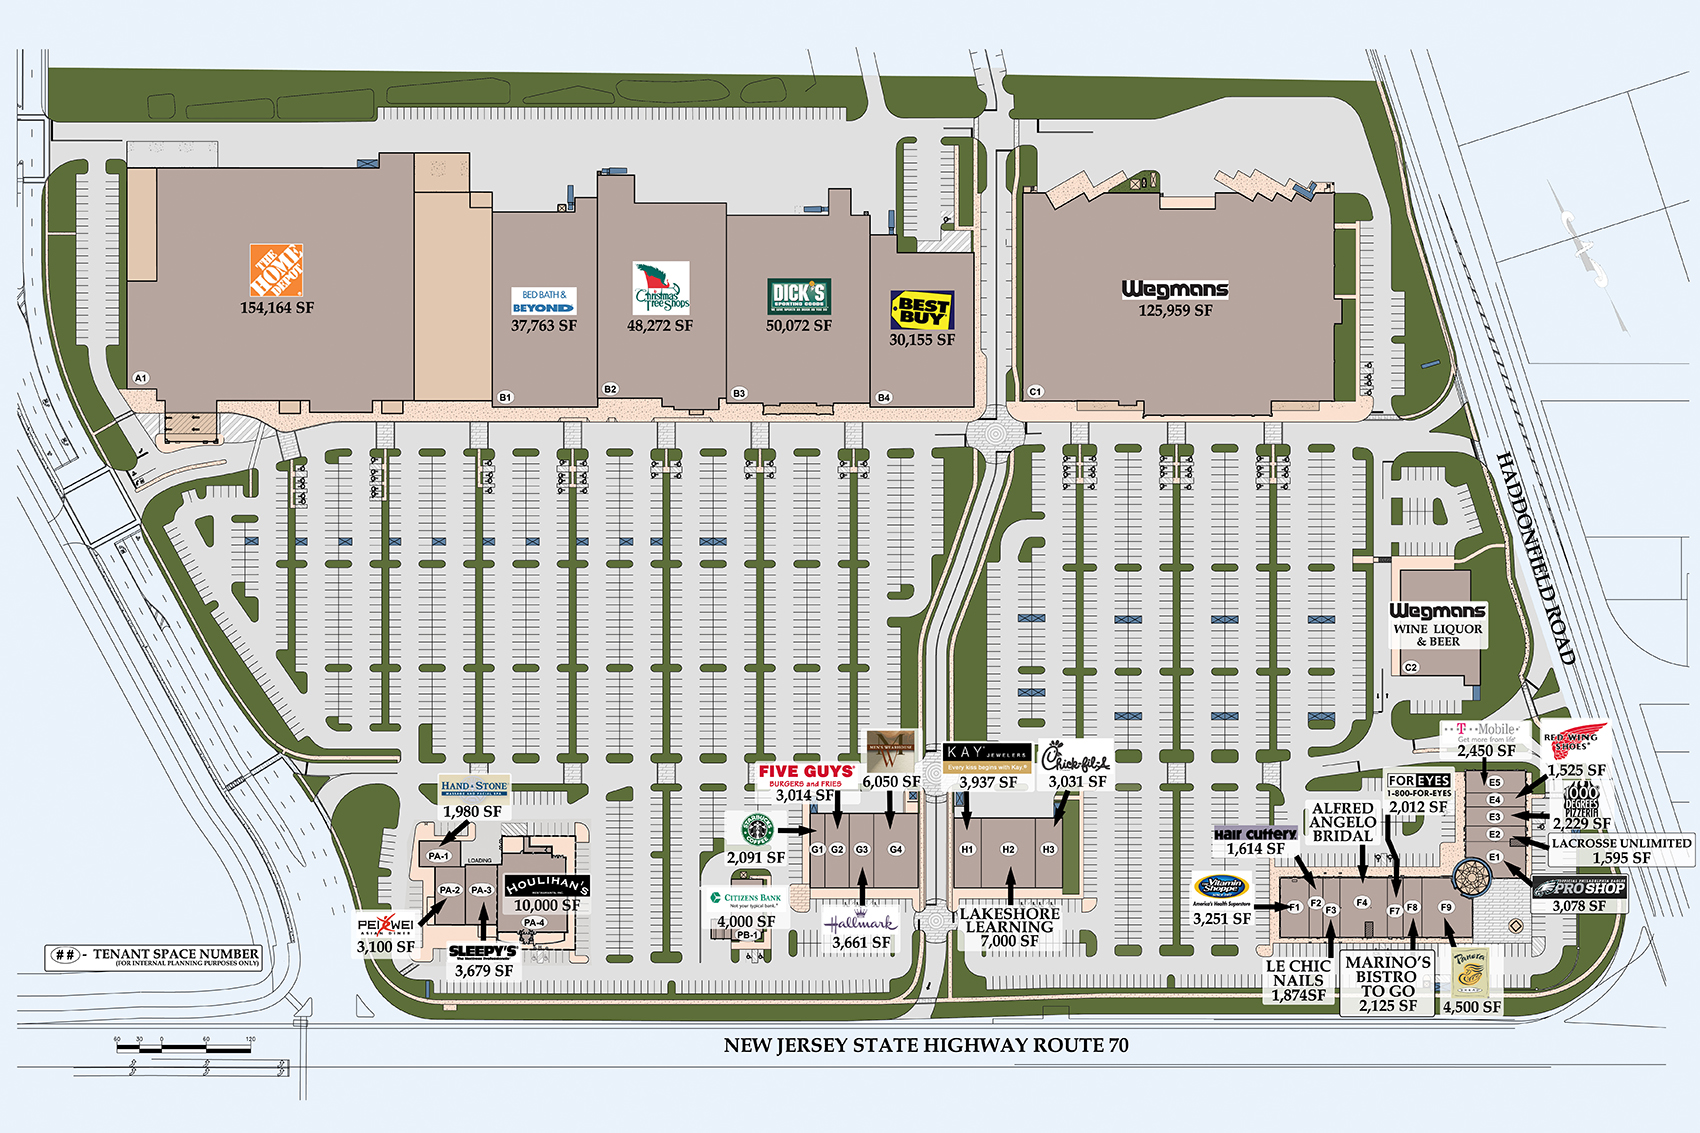 Market Place At Garden State Park Commercial Space In New Jersey Leasing Plans